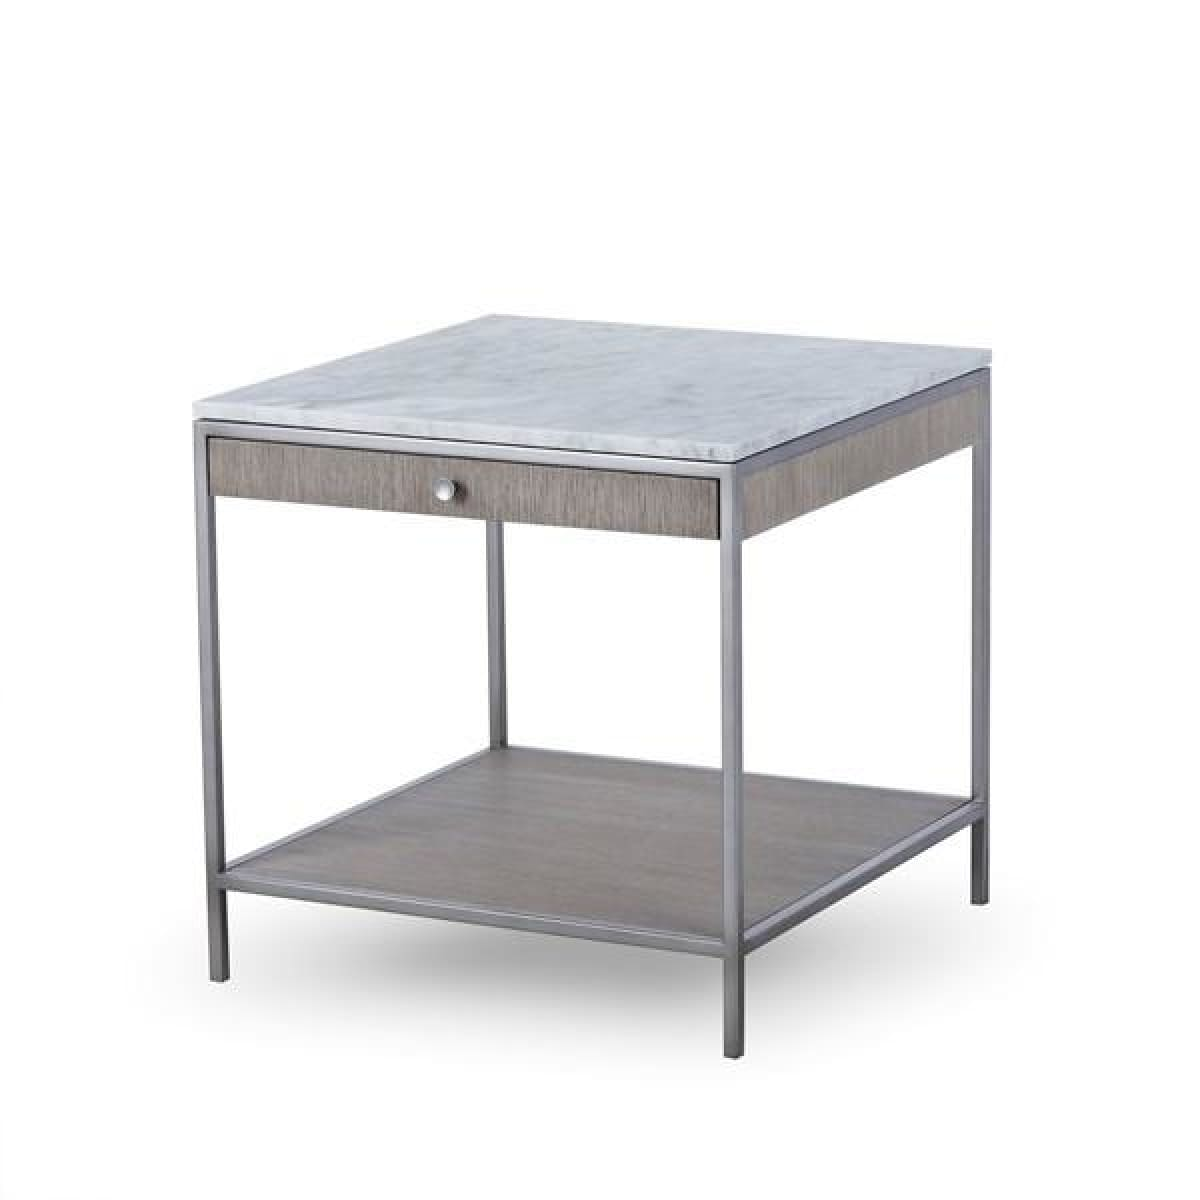 Extra Smalle Sidetable.Augustine Furniture Narius Side Table Extra Small Square